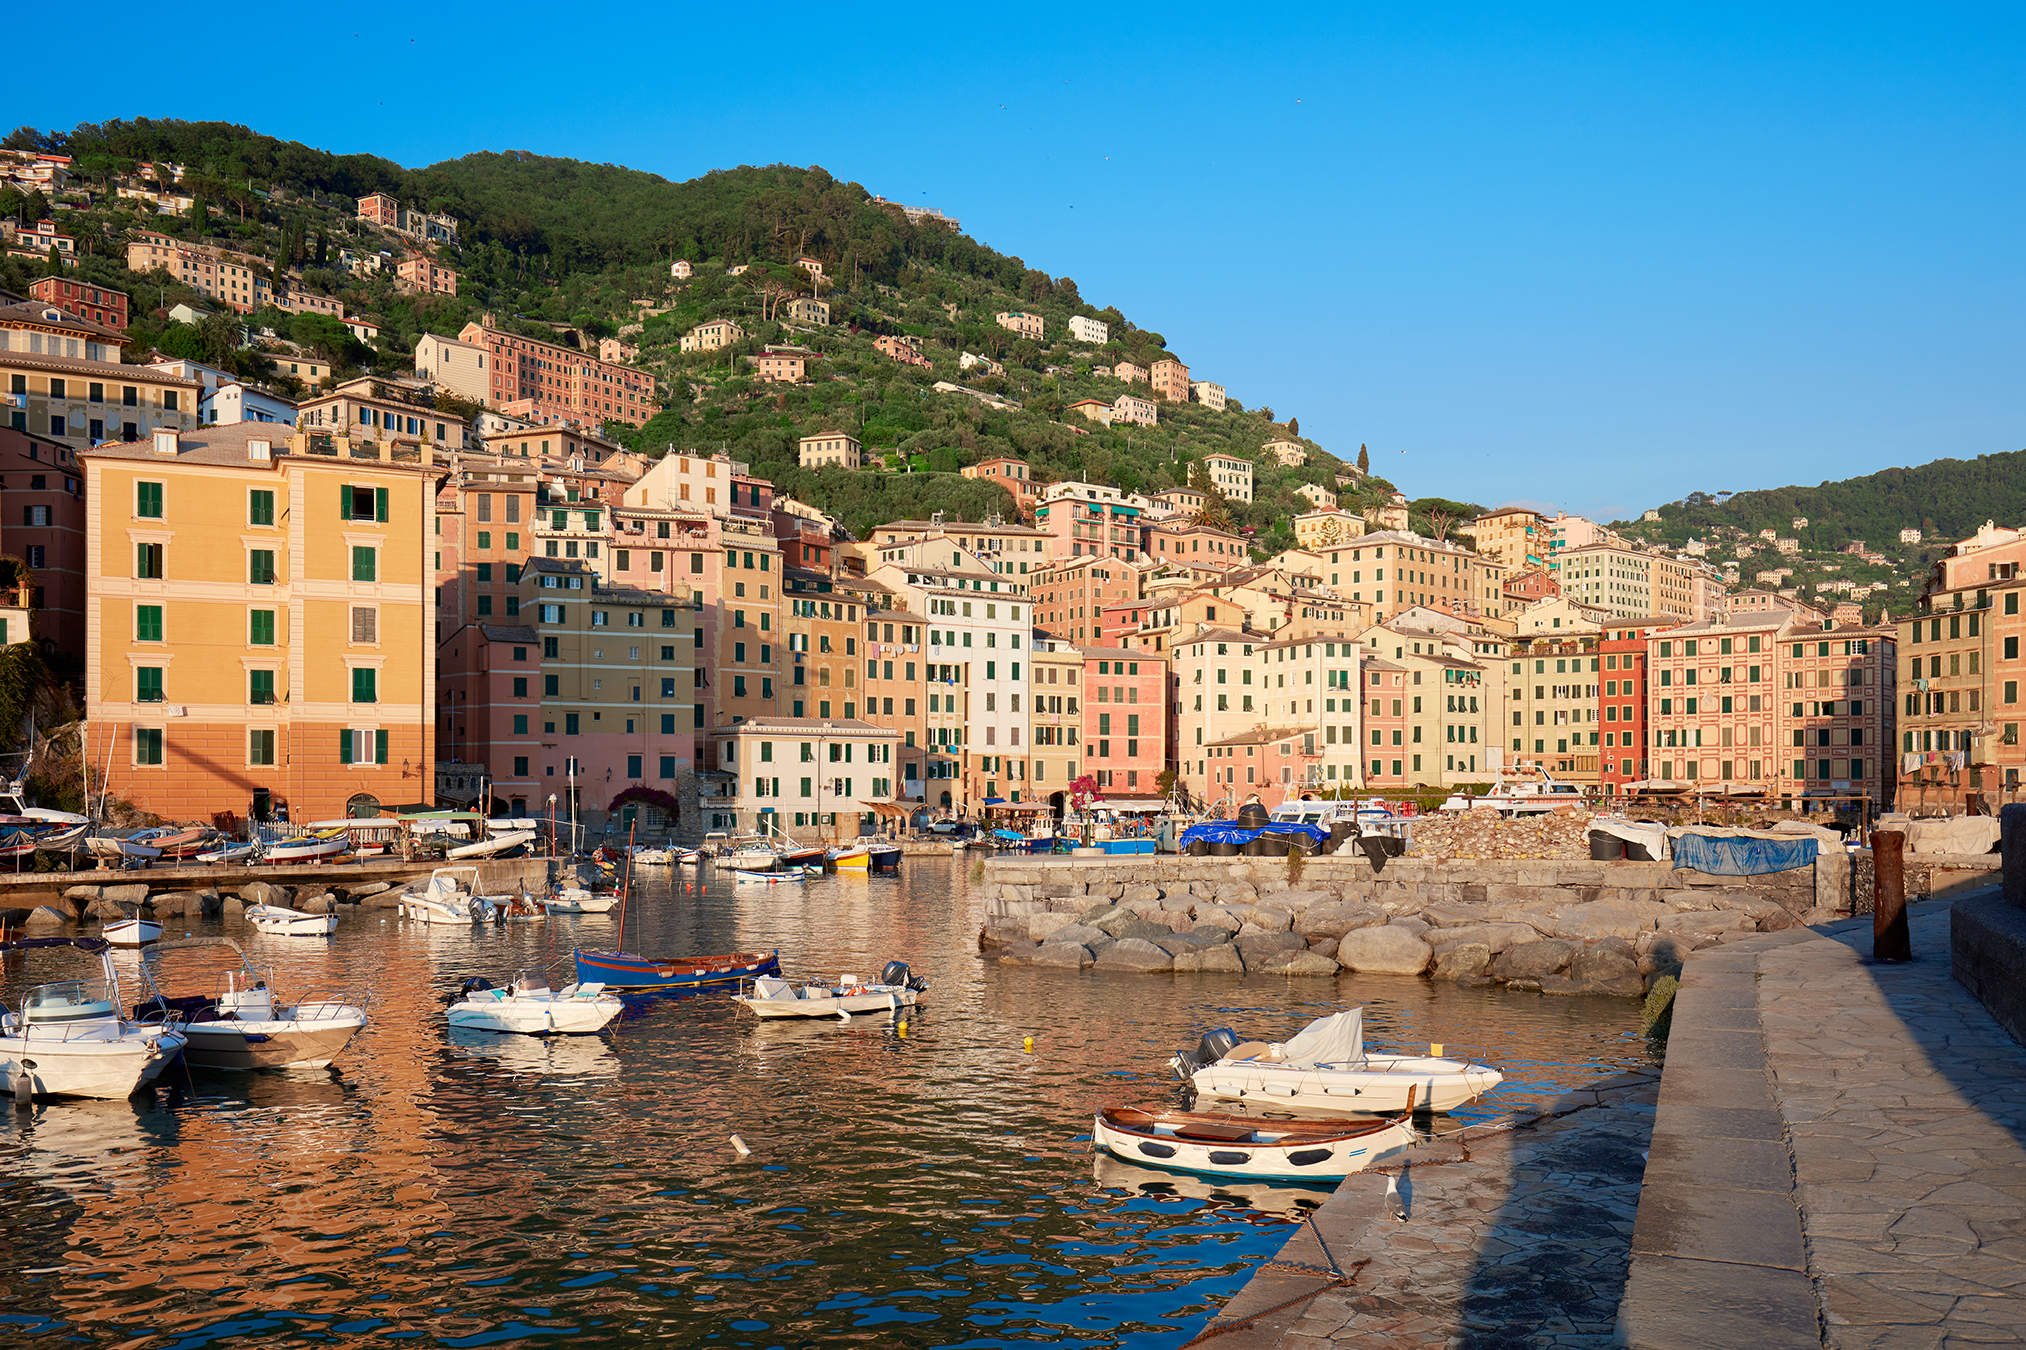 Camogli typical village with colorful houses and small harbor bay in Italy, Liguria in a sunny day